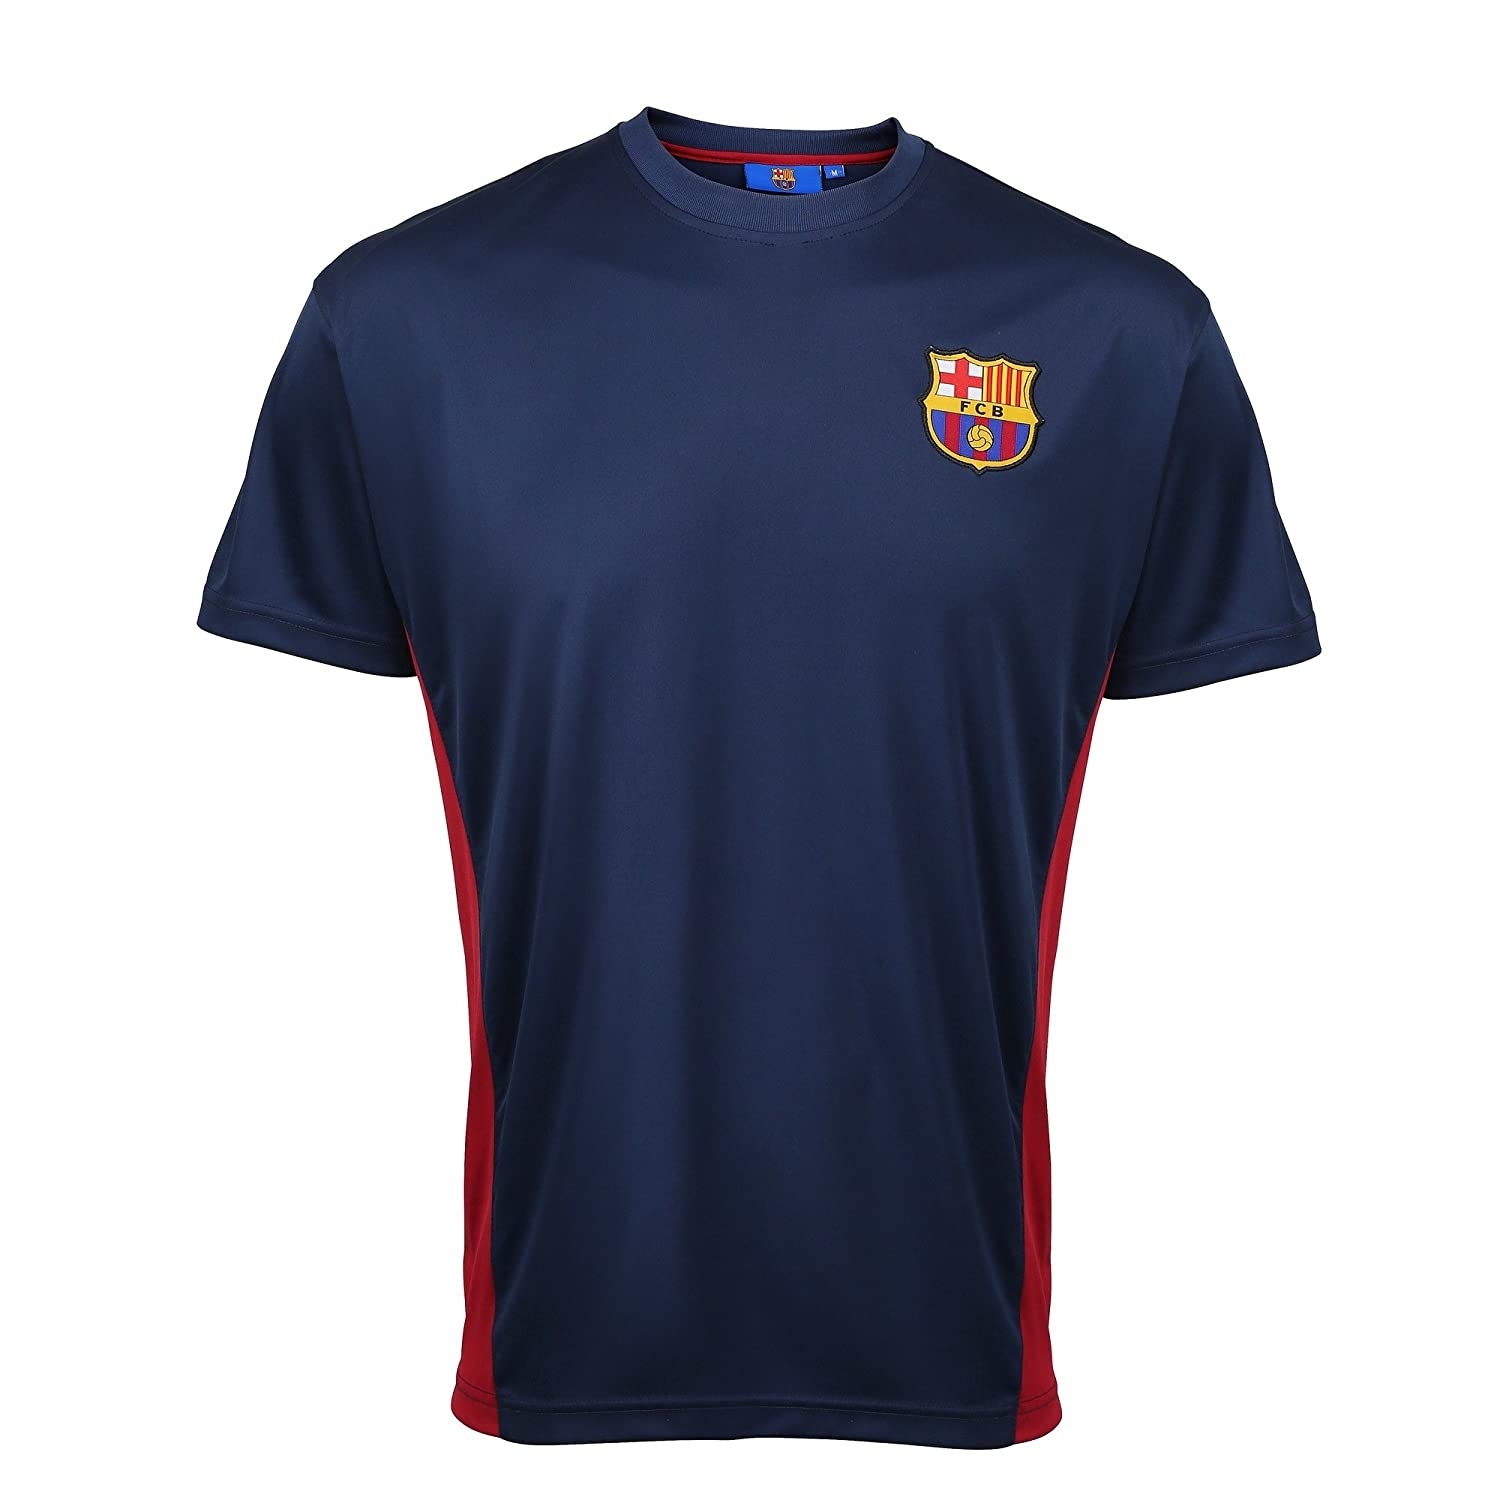 716f5849a9f Amazon.com  FC Barcelona Official Adults Performance T-Shirt  Clothing